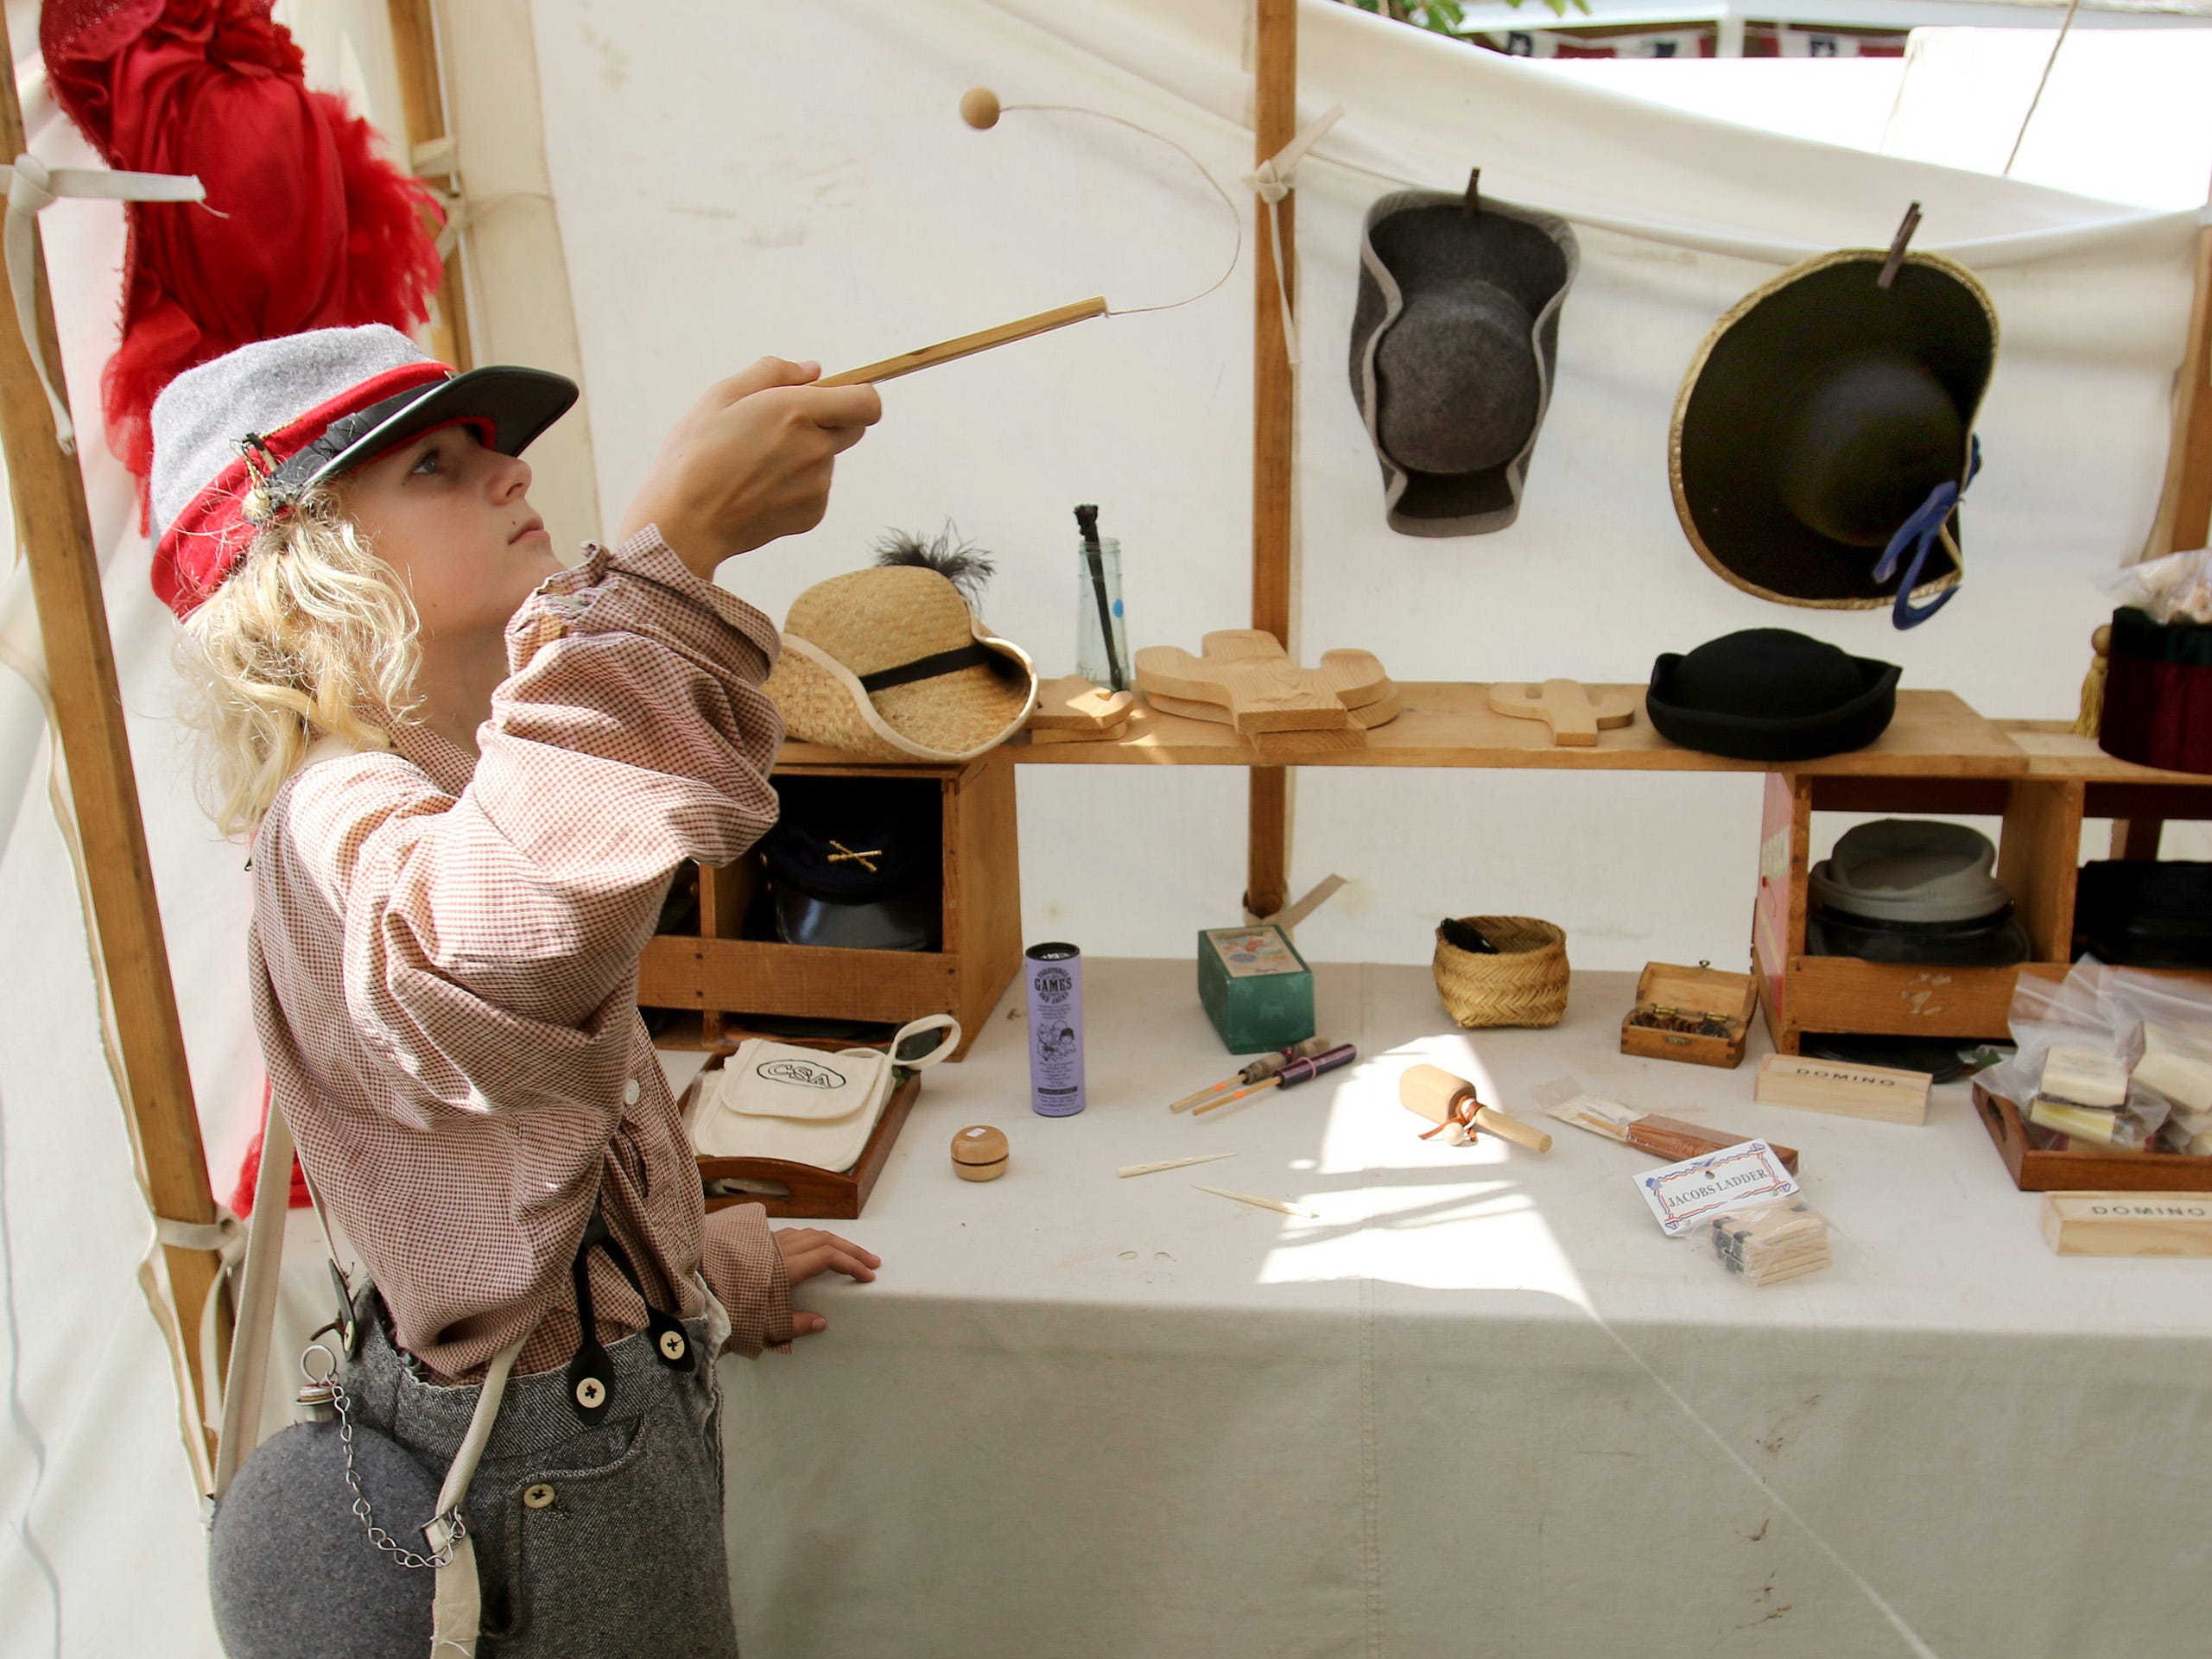 Lucas Vater of Fox Point tries a vintage toy in a store offering period items during Settler's Weekend at the West Allis Historical Society Grounds on Aug. 25.